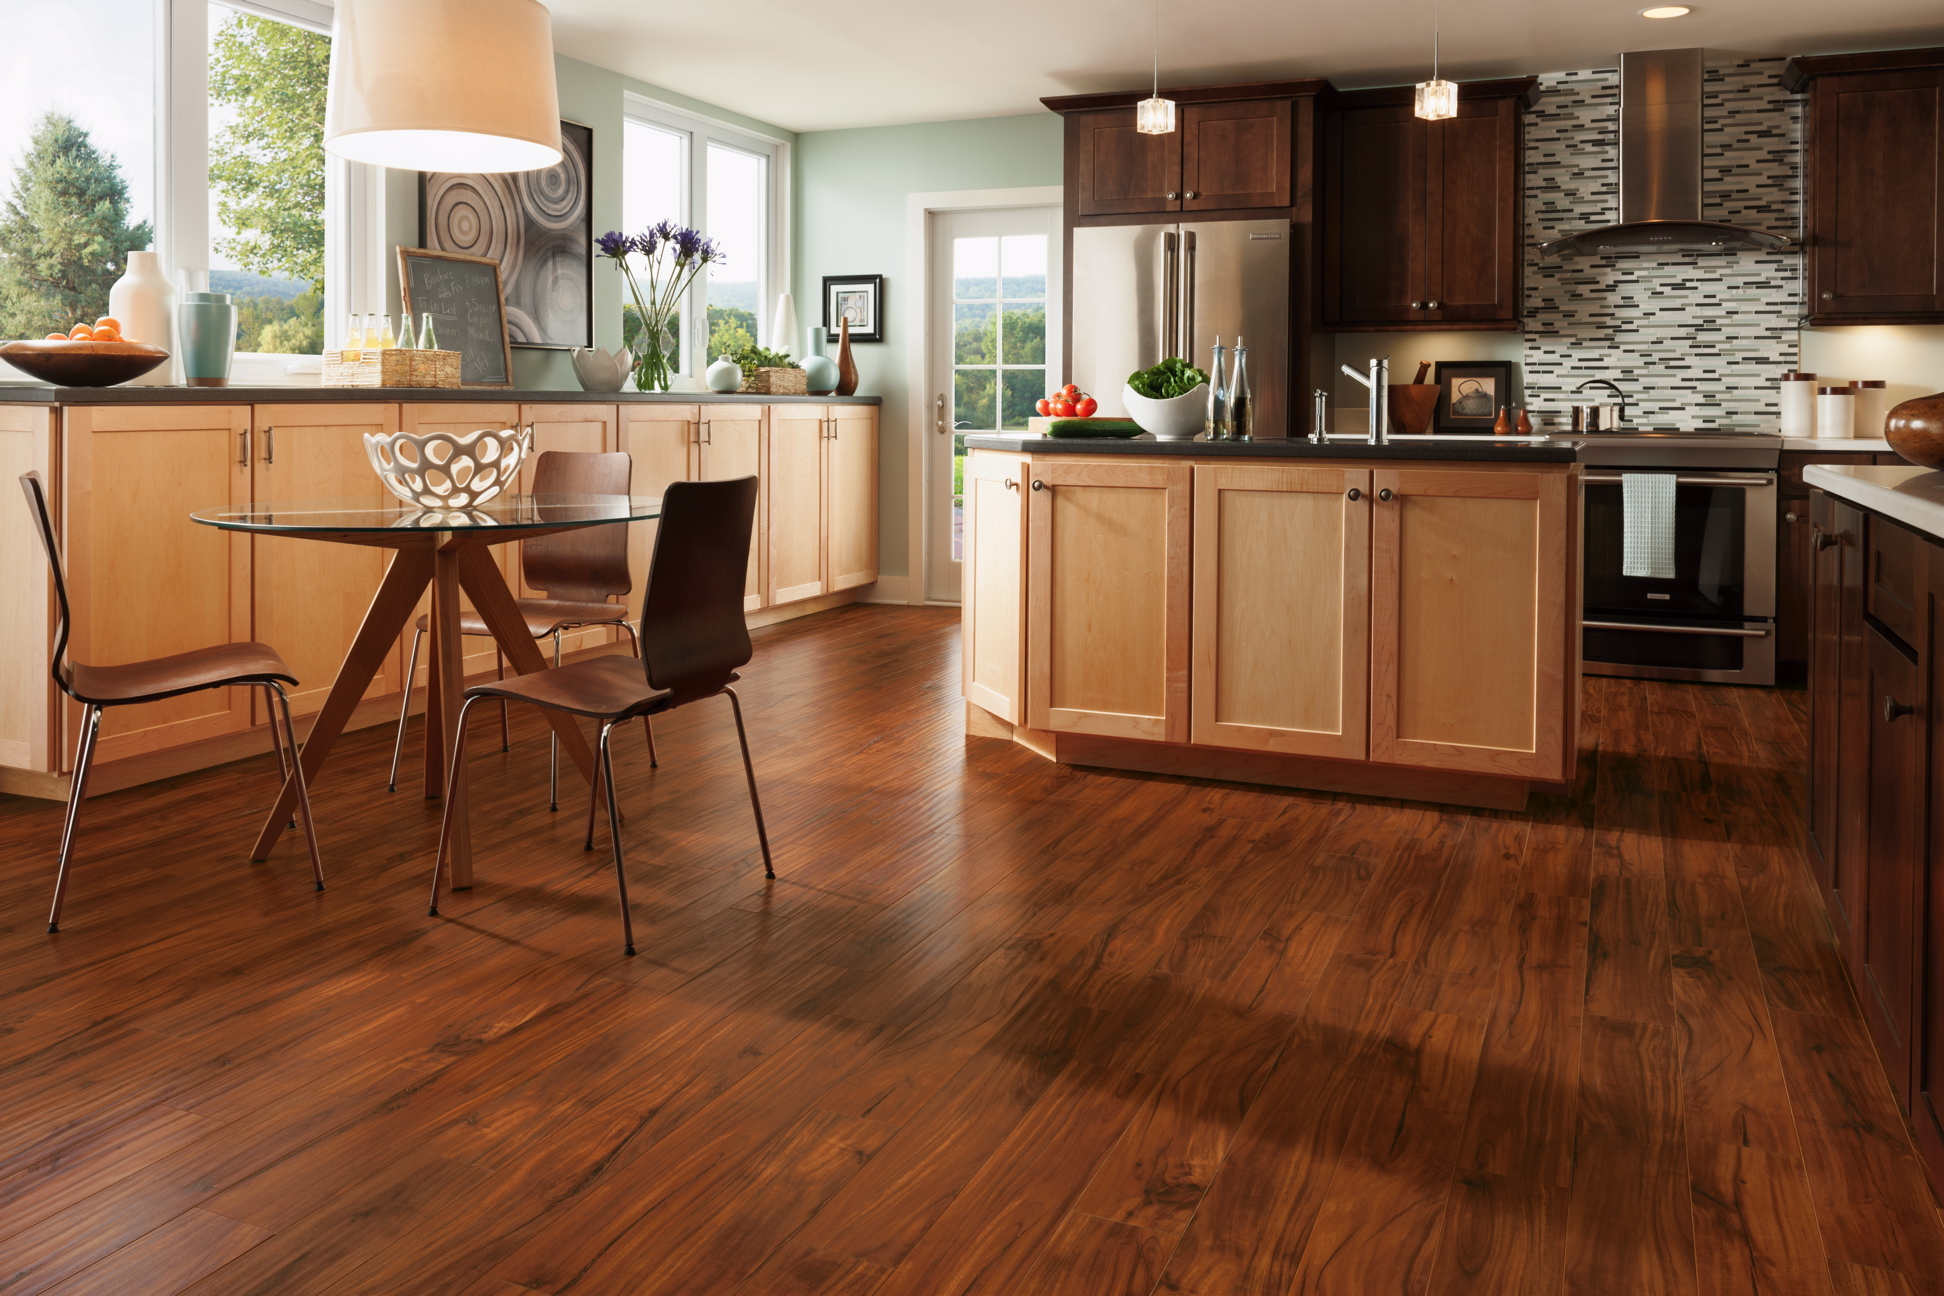 Flooring Contractors Laminate Hardwoods Tile Garden City Boise ID